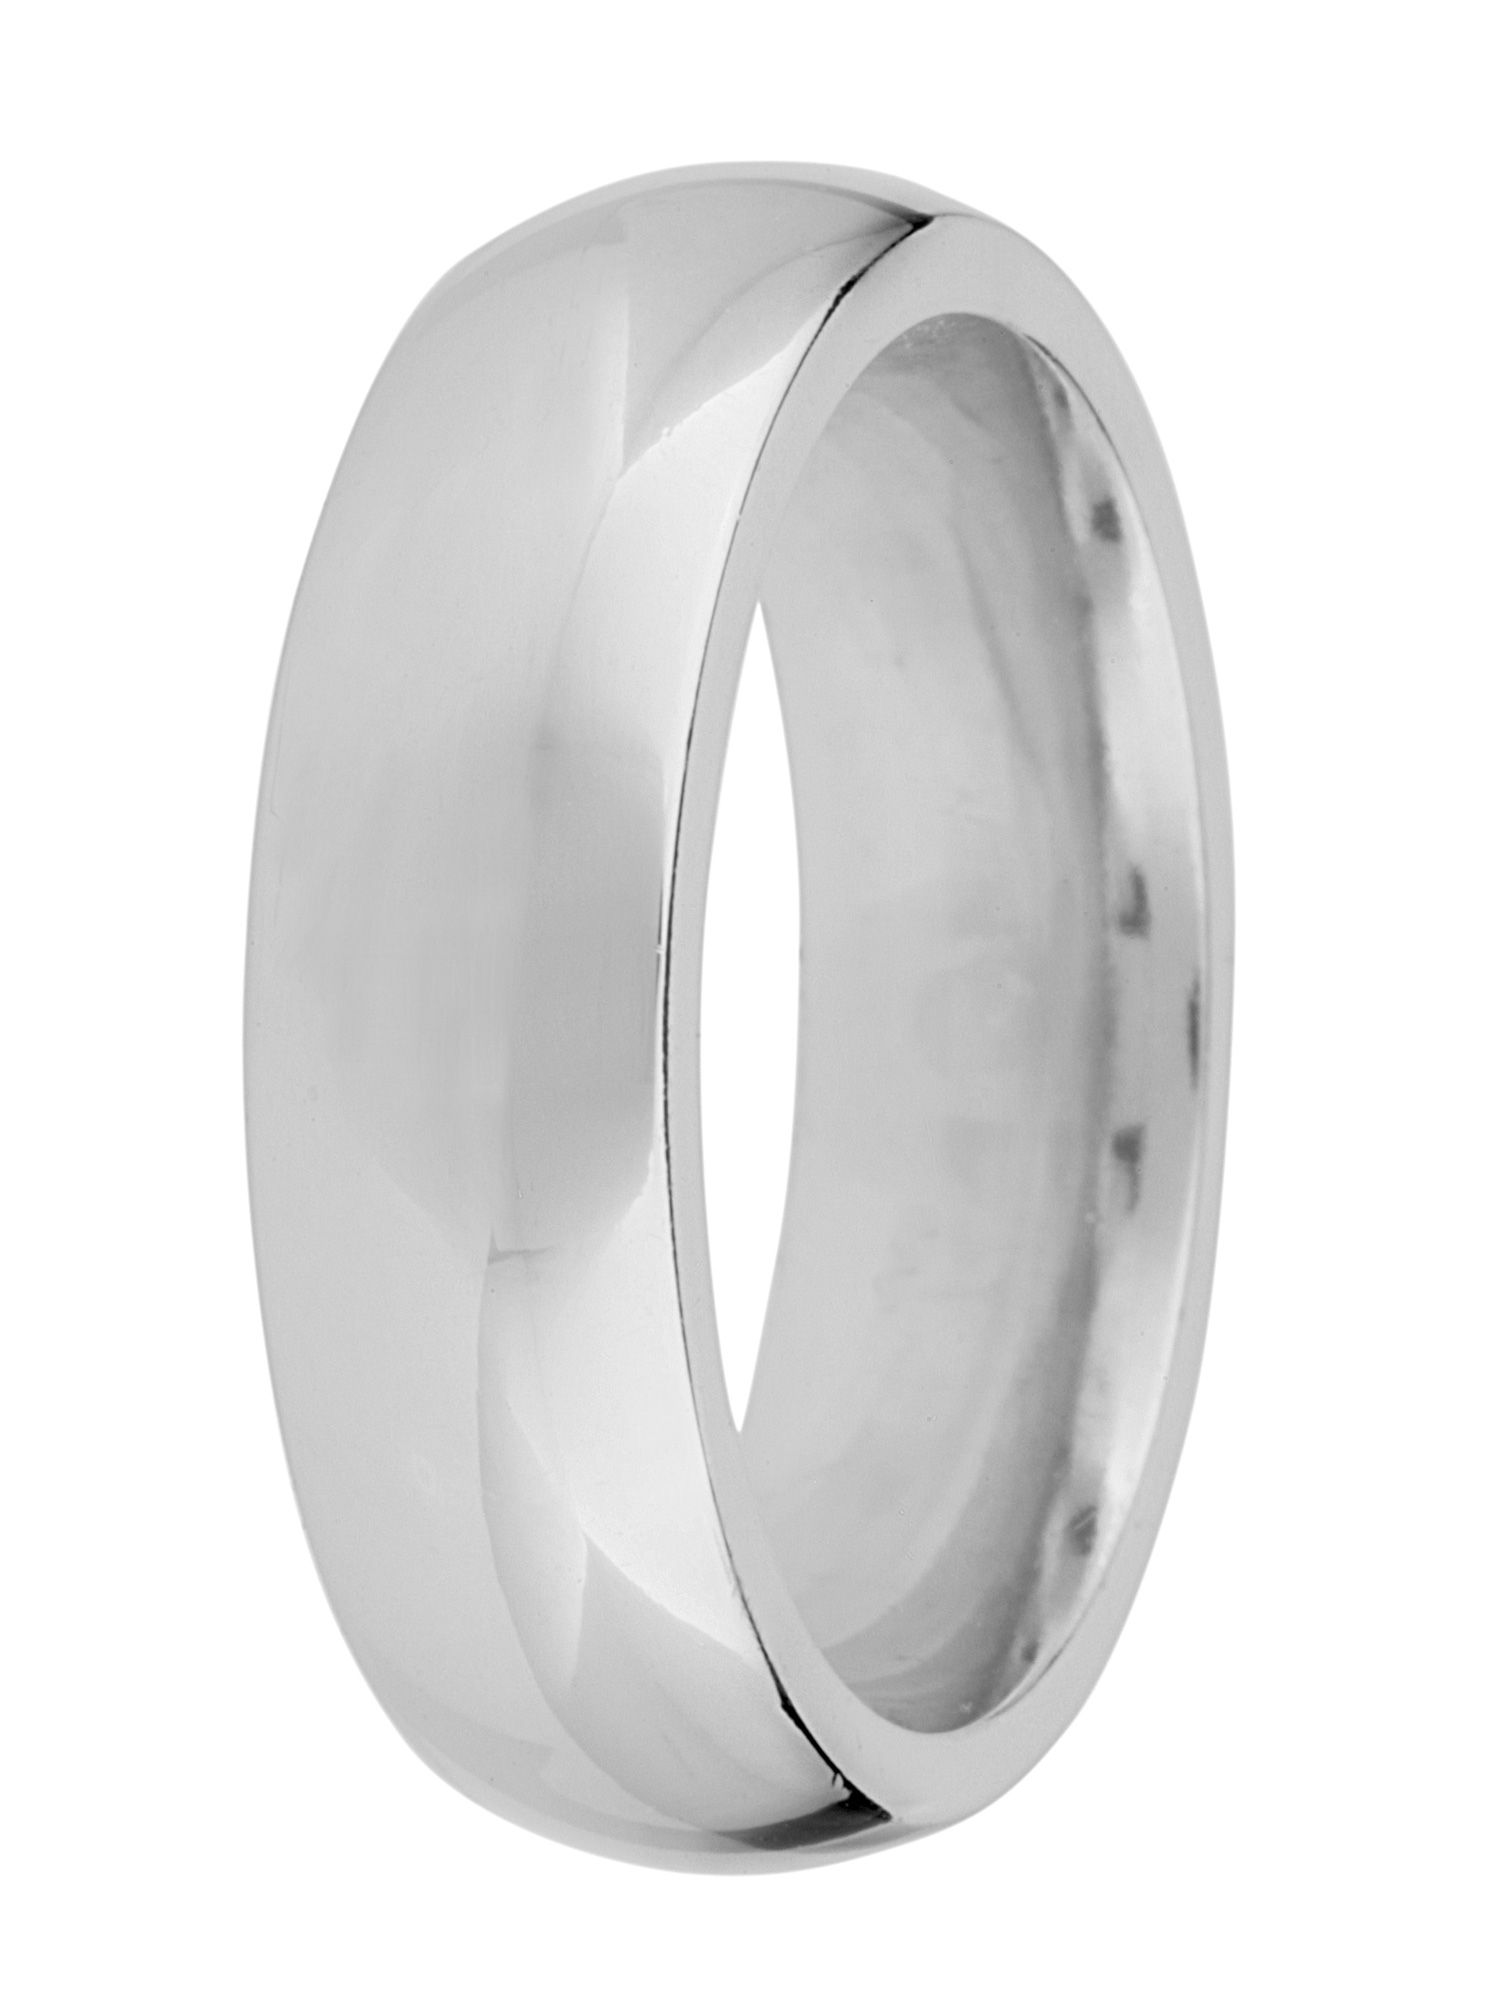 Grooms 18ct gold heavy court 6mm wedding ring - White Gold